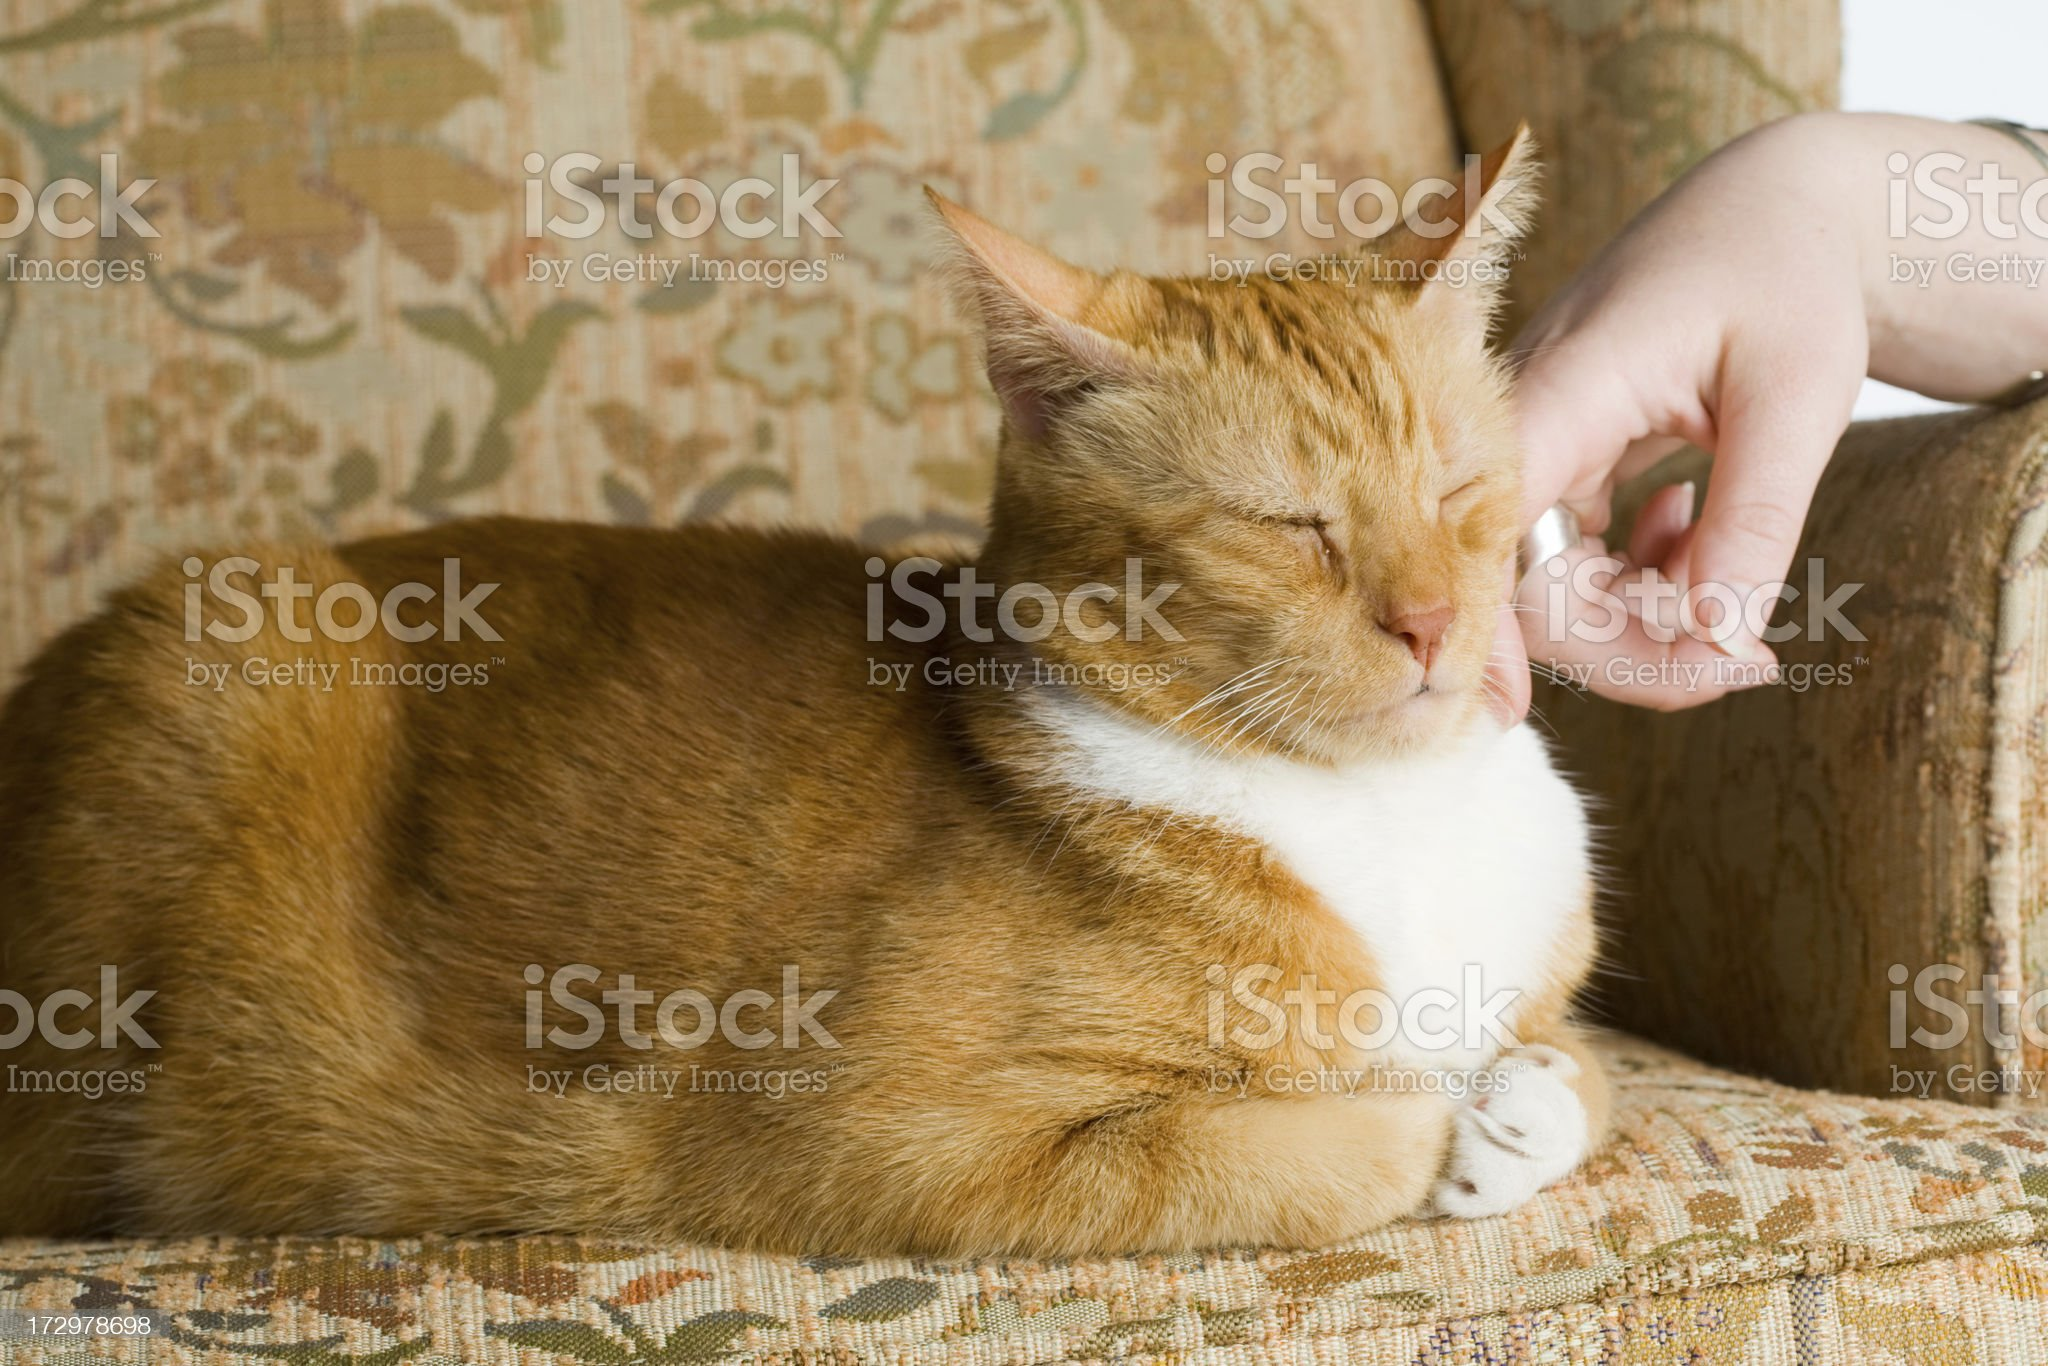 Kitty cat getting pet royalty-free stock photo